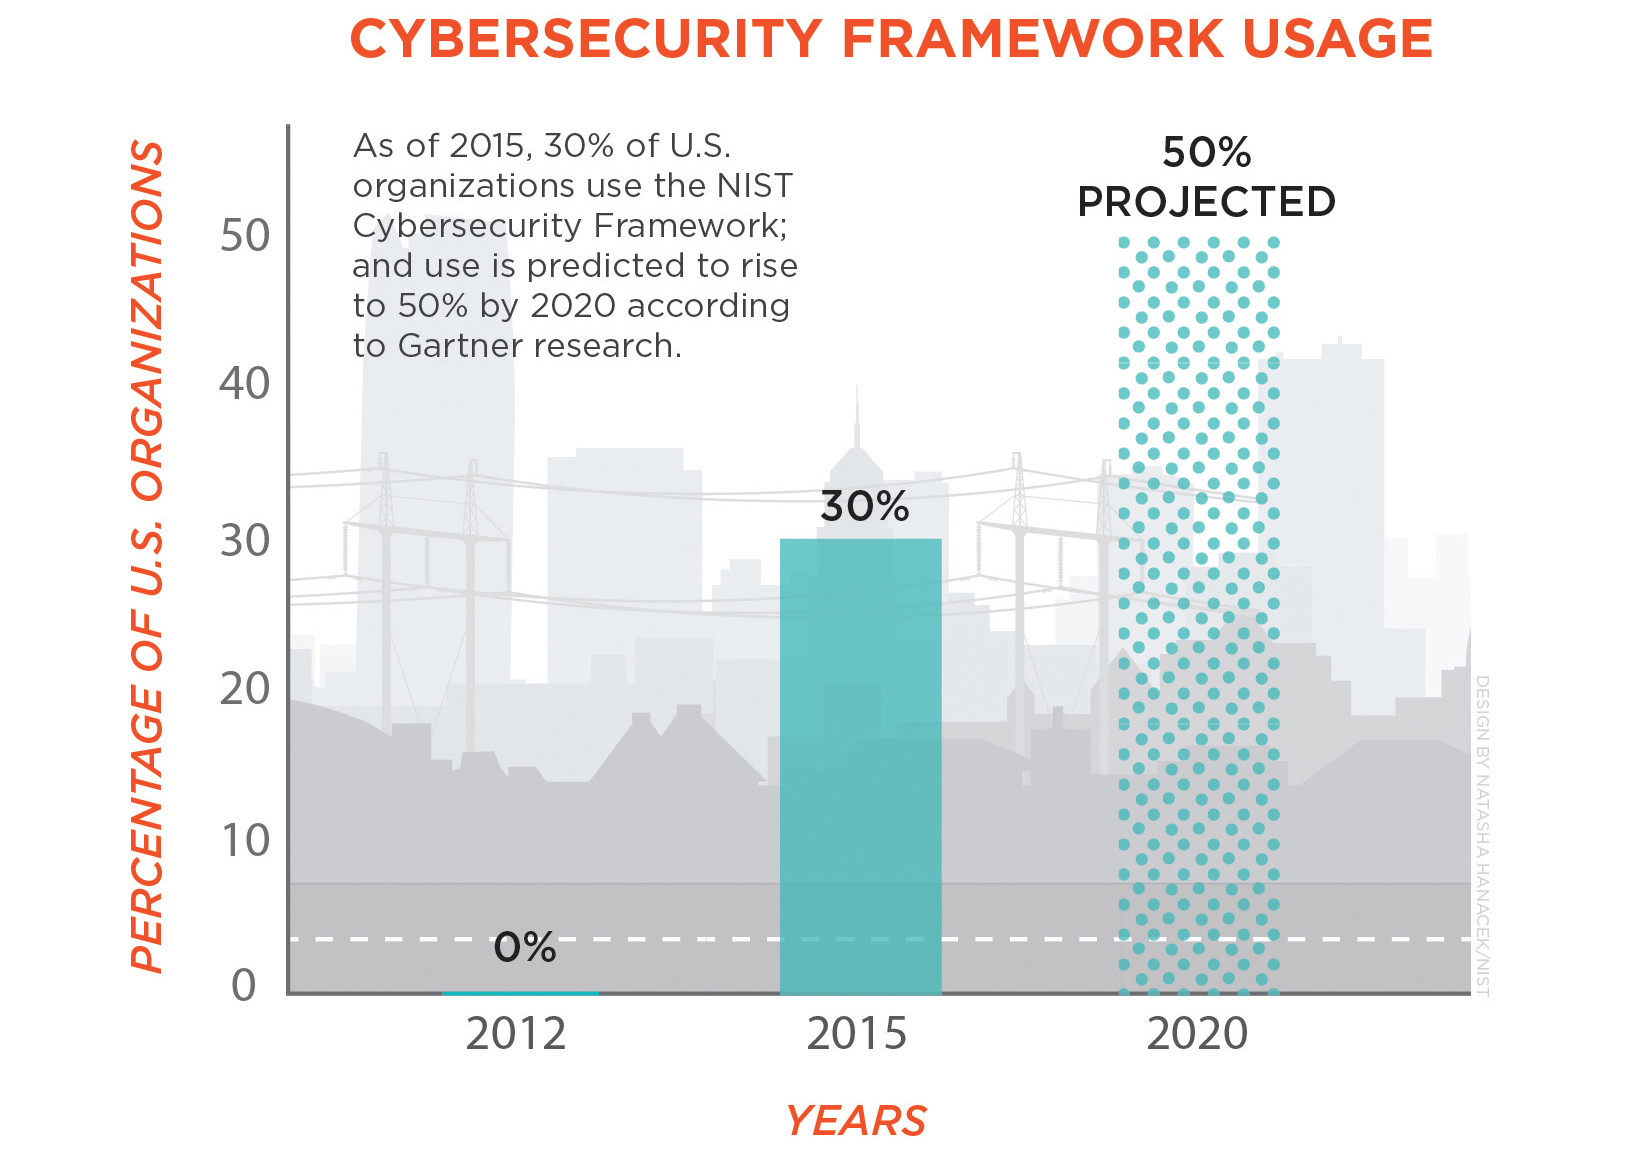 Graph showing 30% current use of the Cybersecurity Framework and projected 50% use